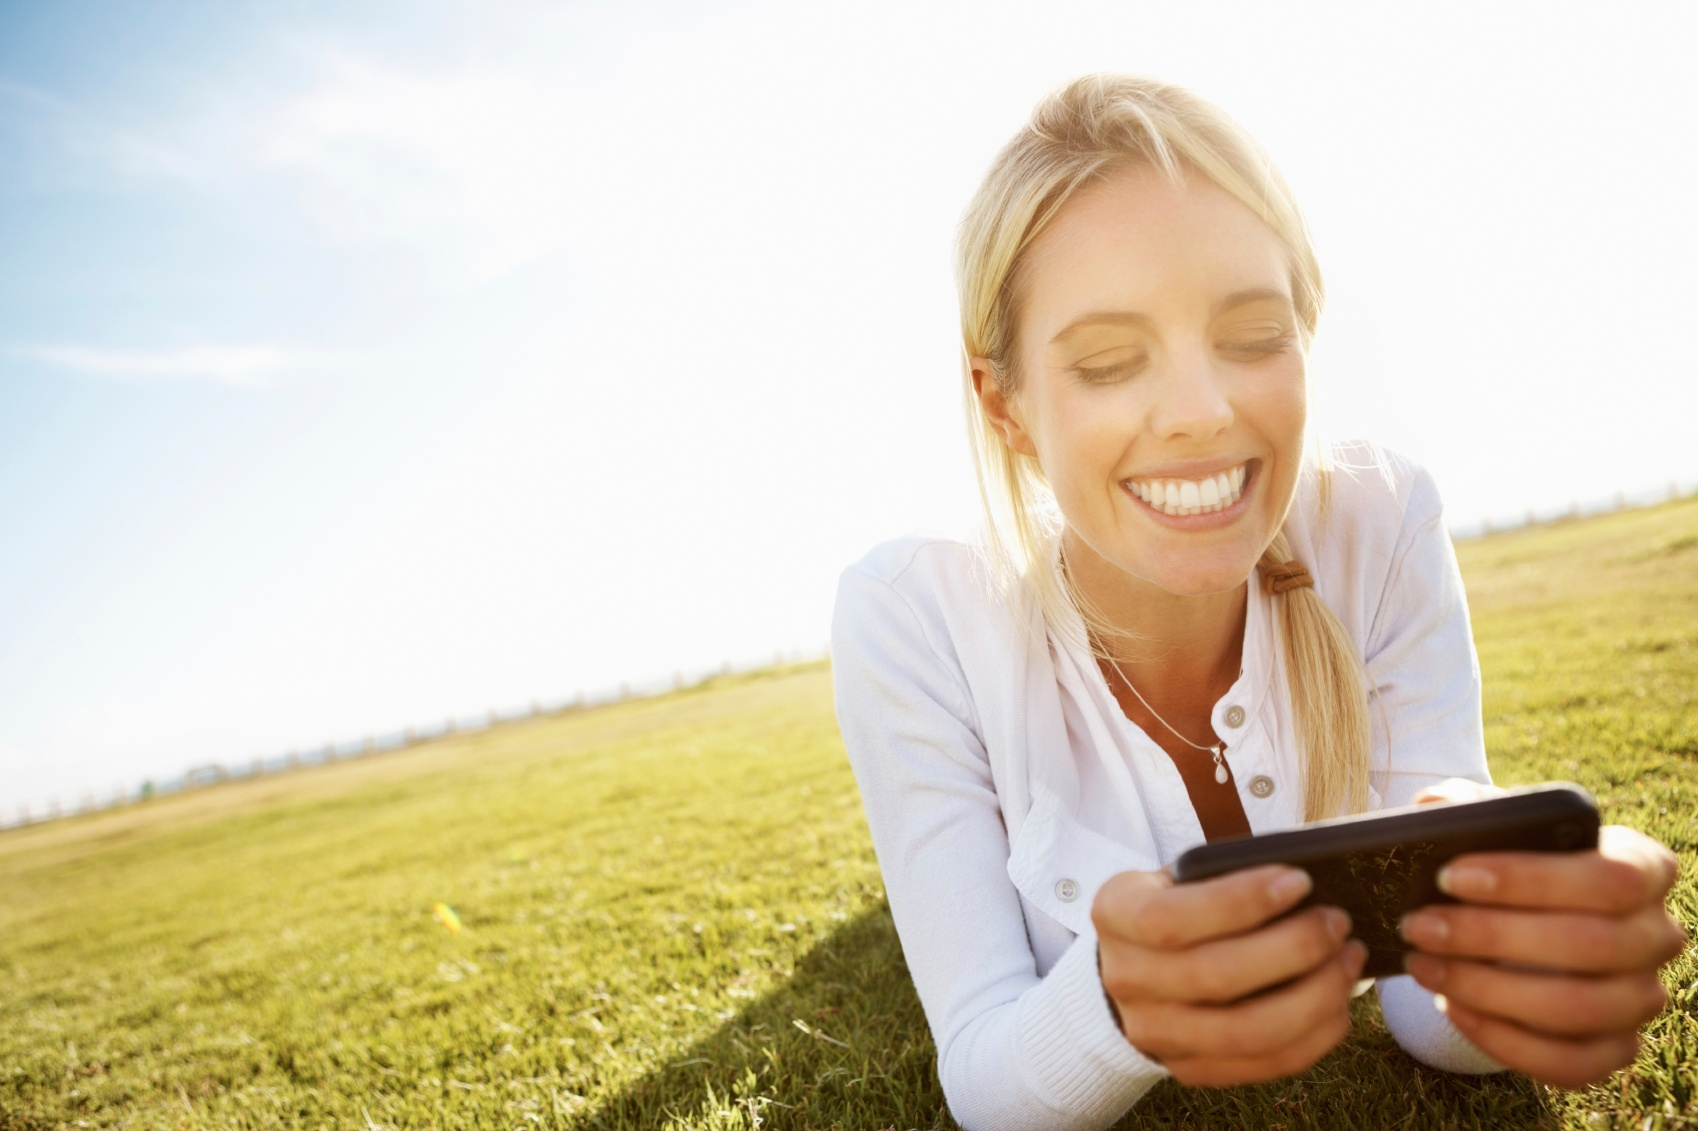 woman on grass texting.jpg